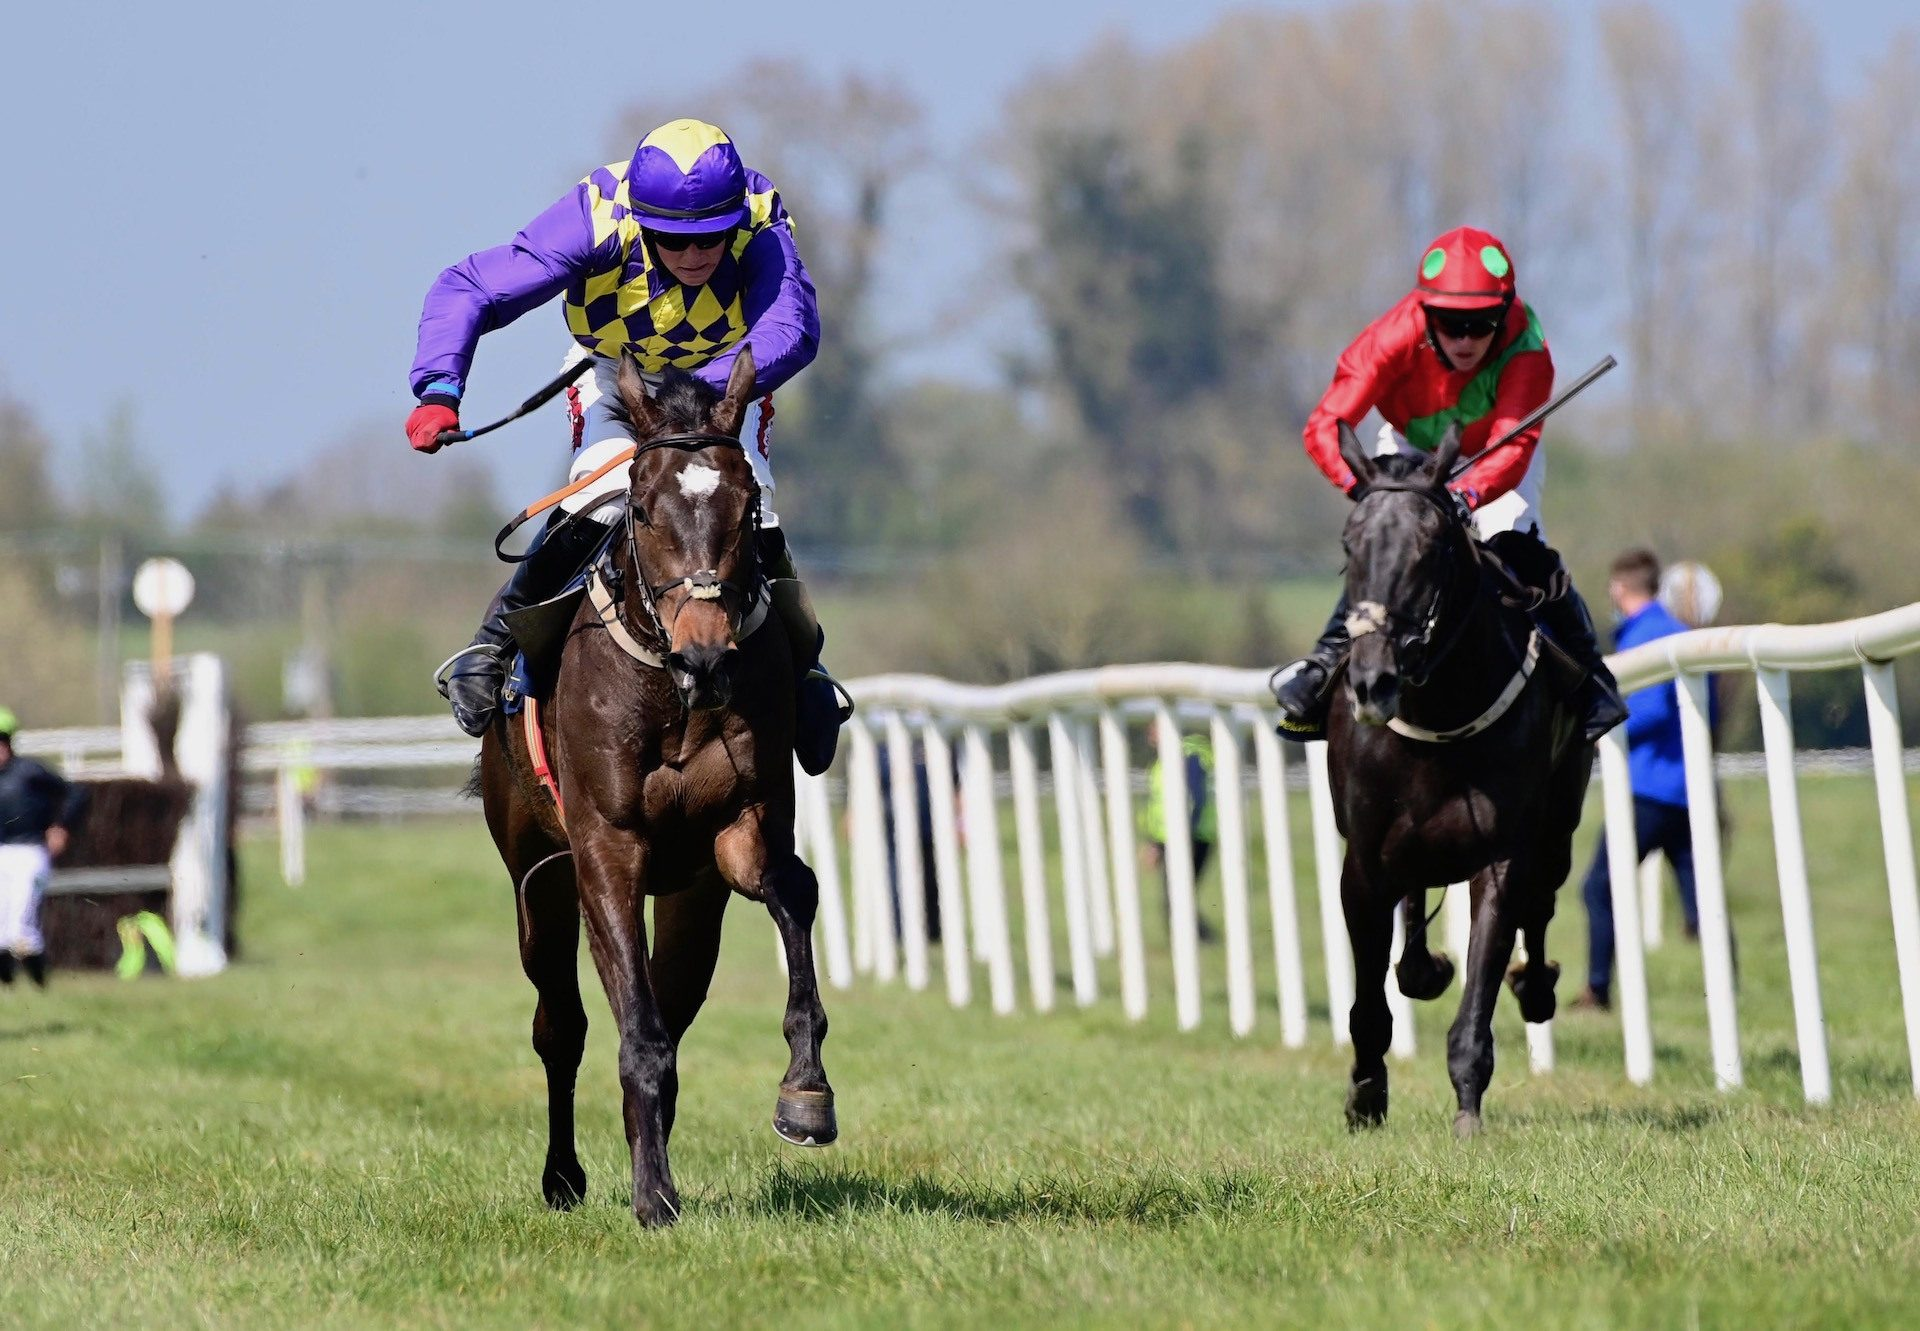 Daily Present (Mahler) Wins The 4 YO Maiden At Tipperary